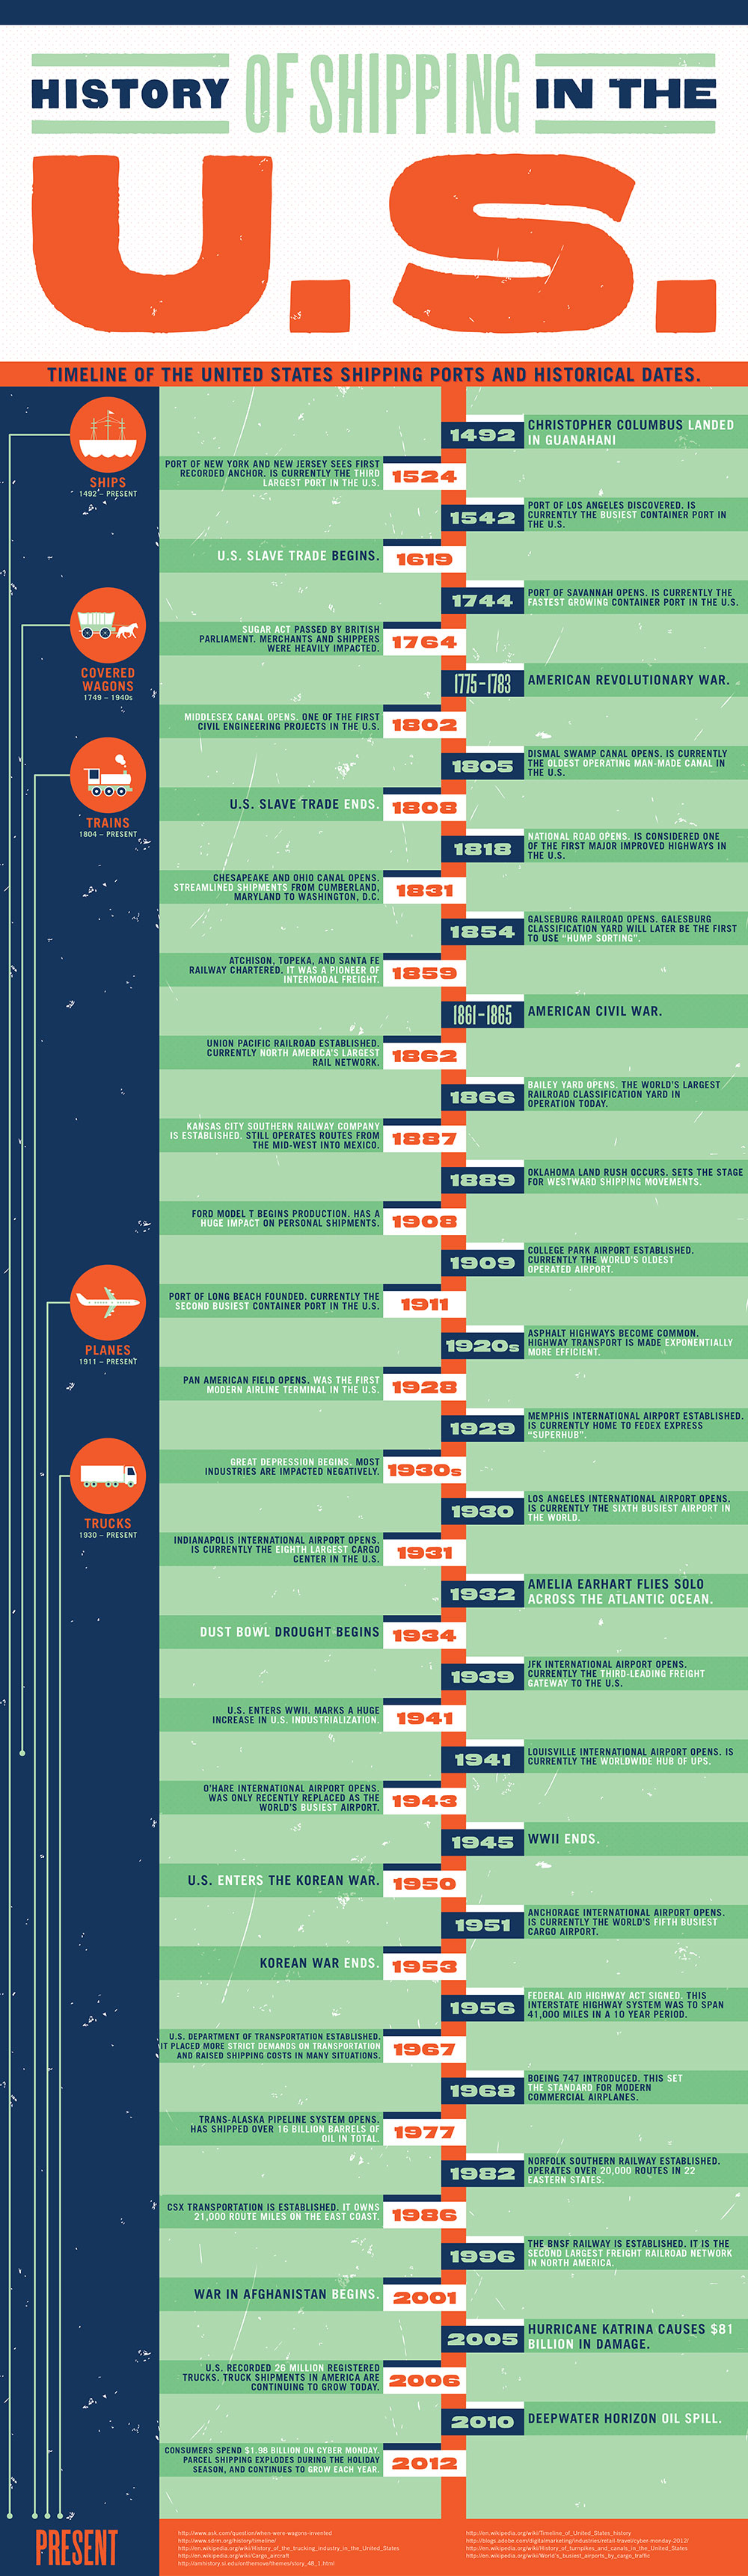 history of shipping in the us